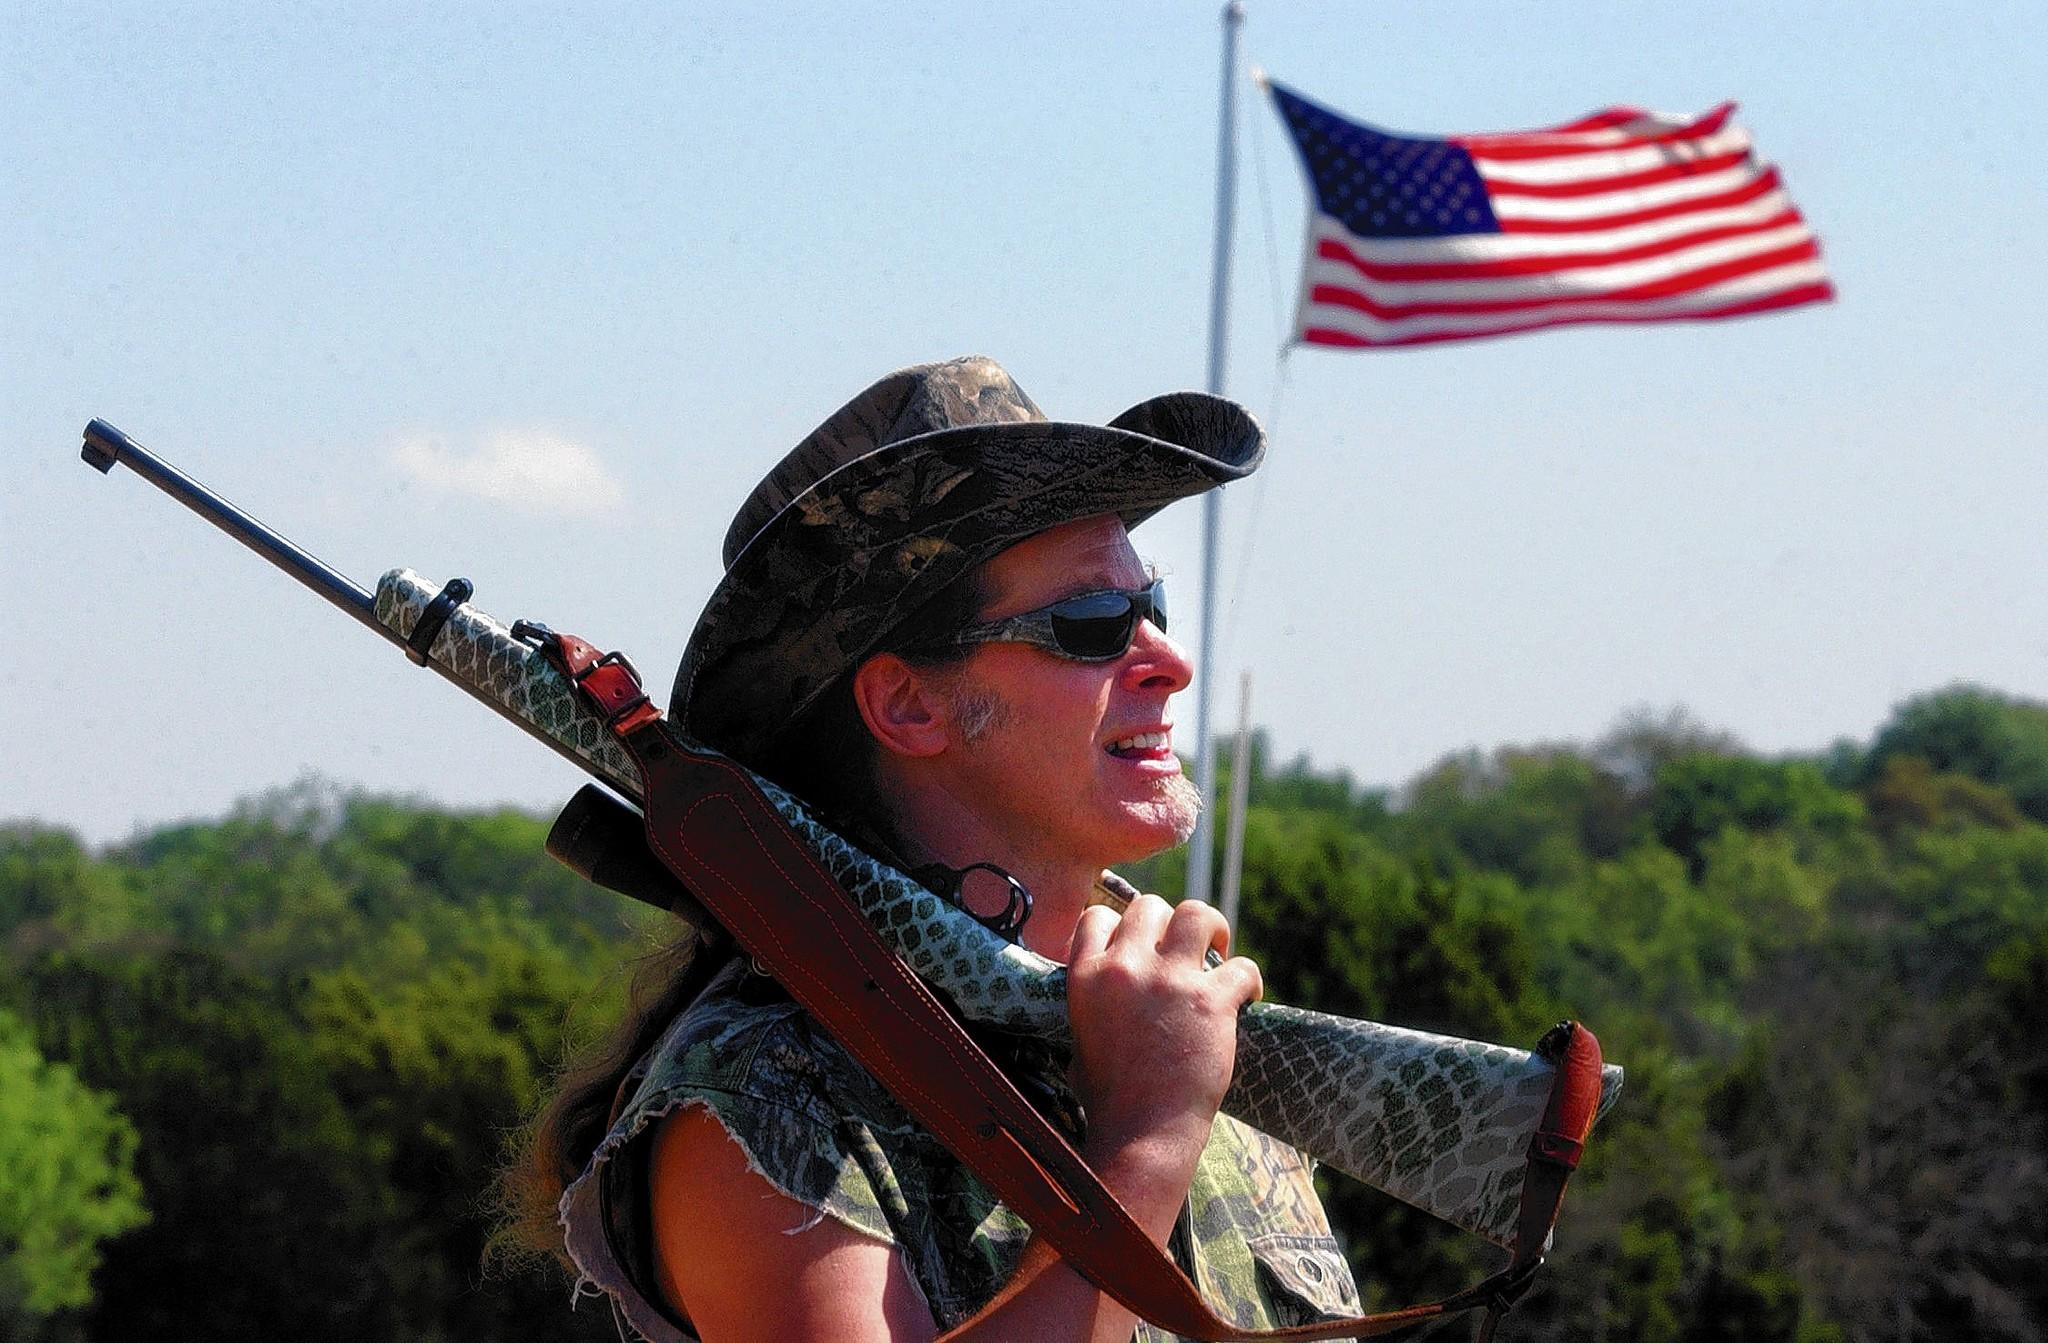 Rock and roller and outdoorsman Ted Nugent says 'The fact that Pennsylvania and 10 other states forbid God's natural hunting season on Sunday is one of the great tragedies against freedom and the Liberty Bell that stands in Philadelphia. It's a truly bizarro world that a government can tell a free man what he can do on Sunday, especially when [the government] can't.'